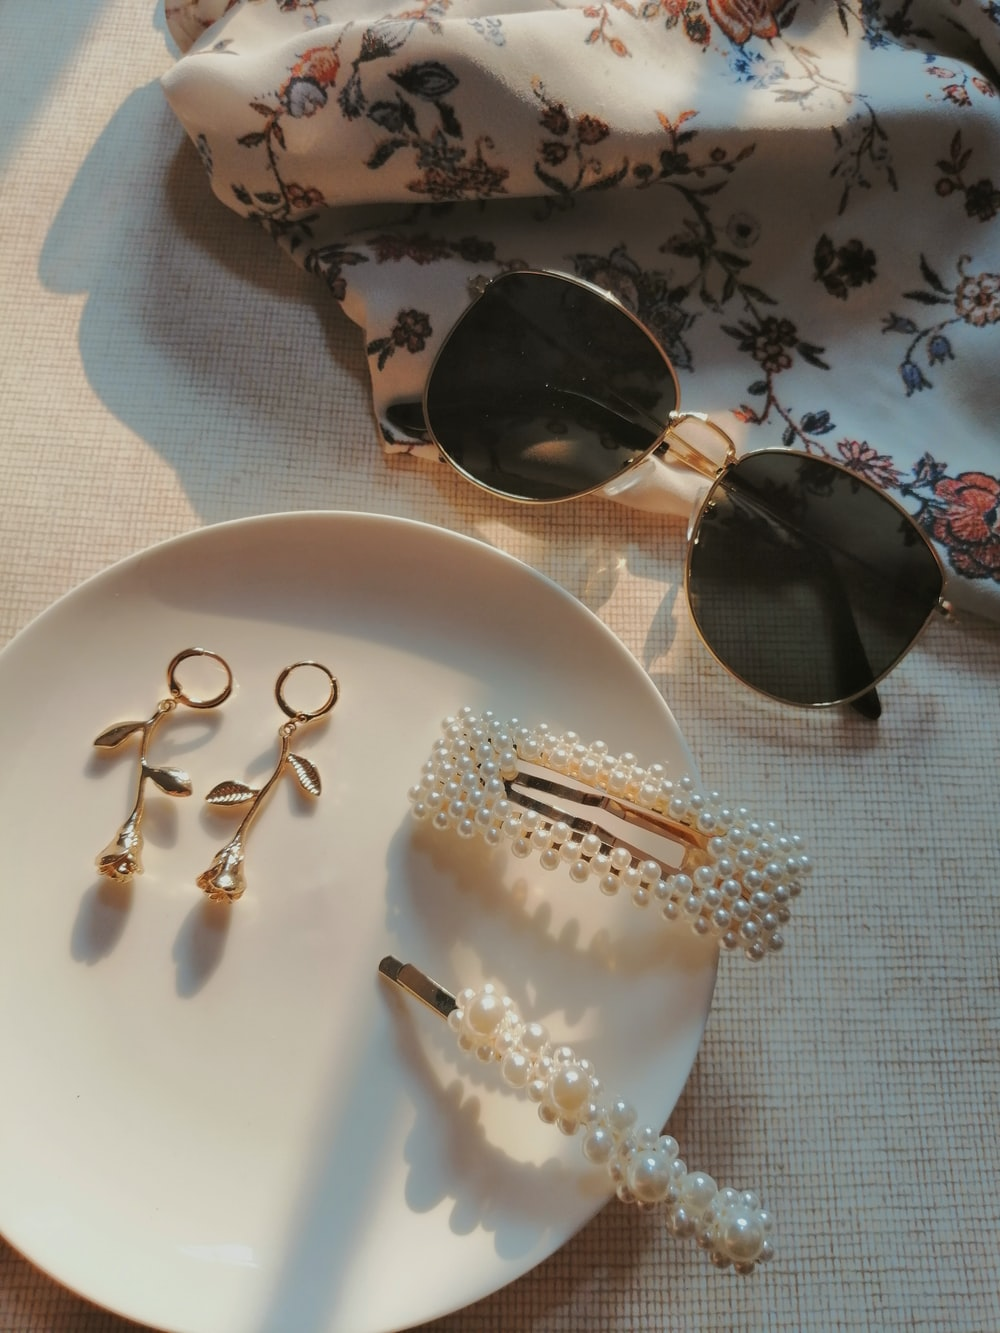 earrings and hair clip on plate